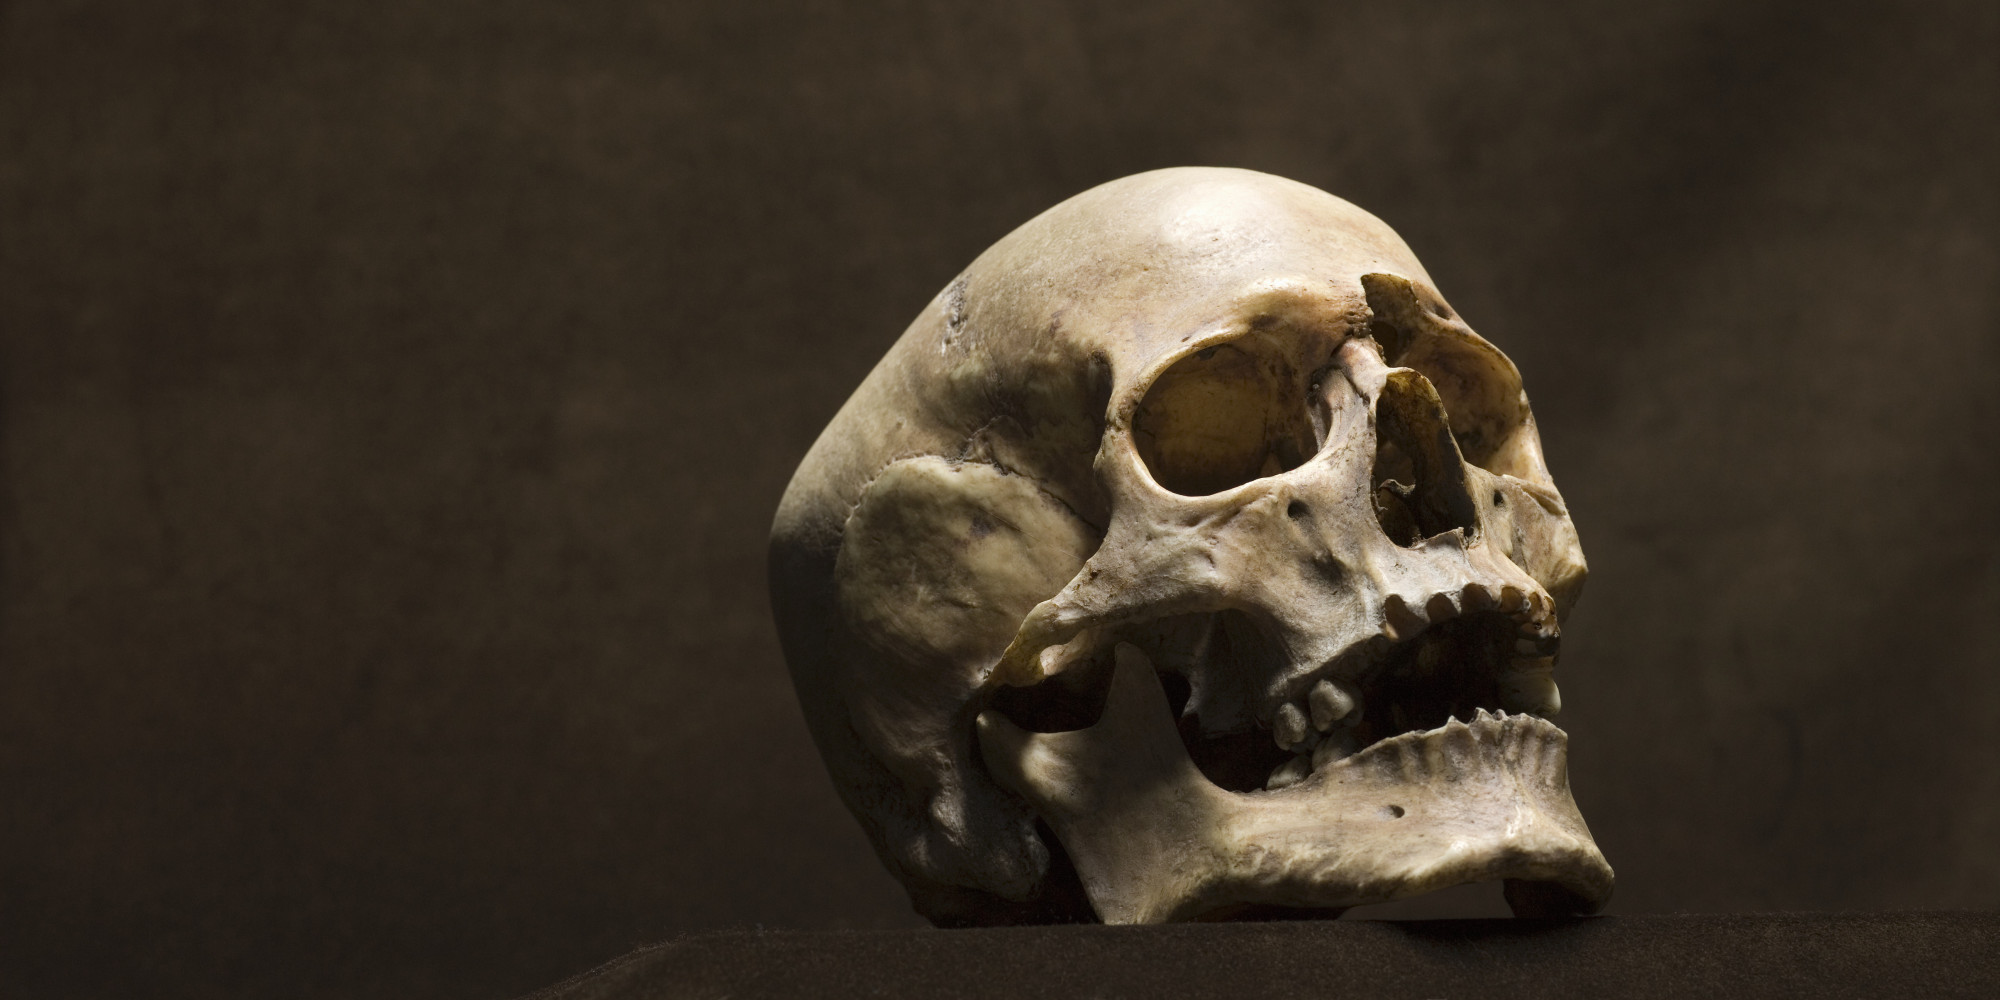 Human Skull On Paper Plate Found By Hikers In Oakland